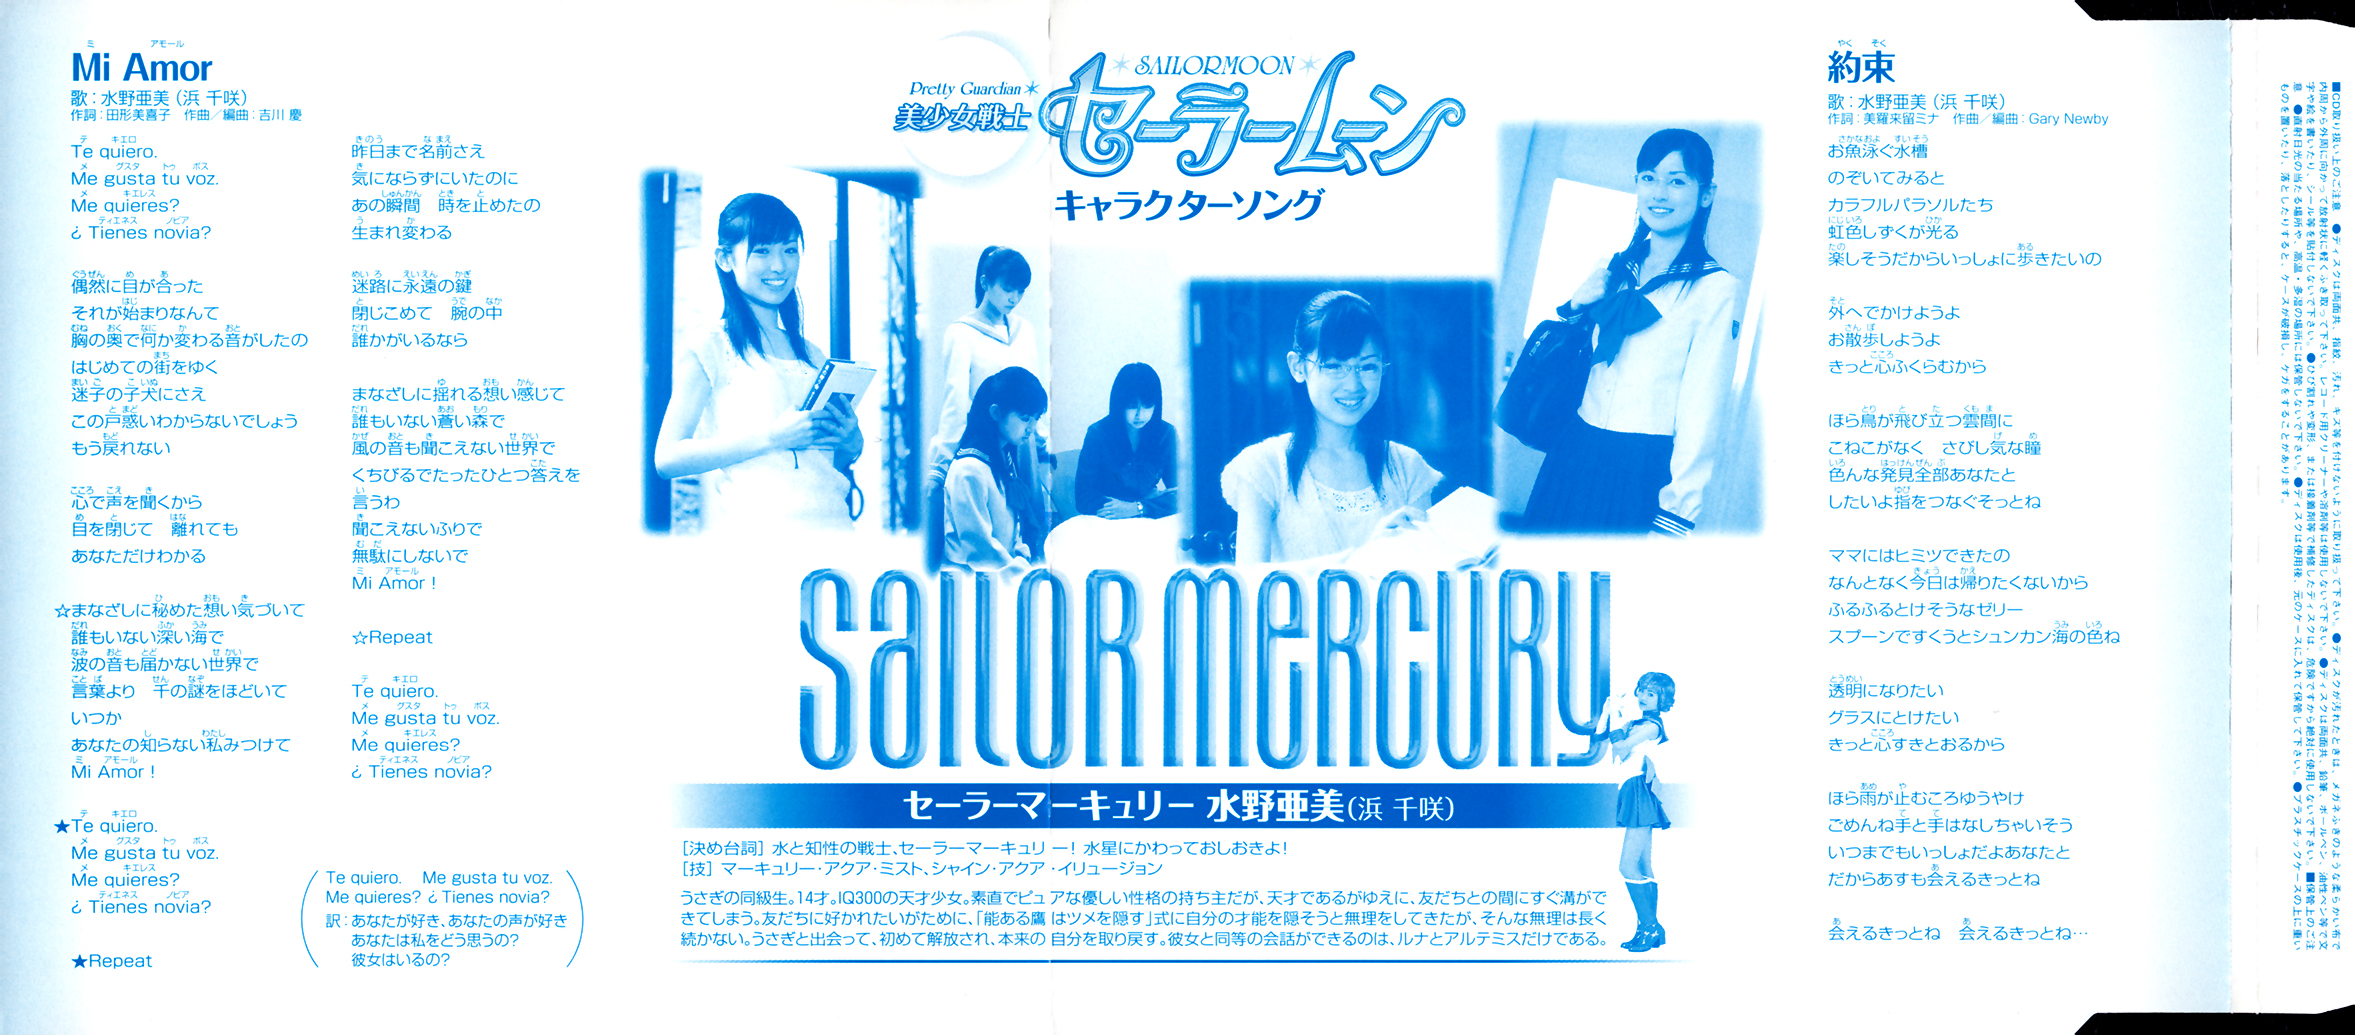 Pgsm_sailor_mercury_03